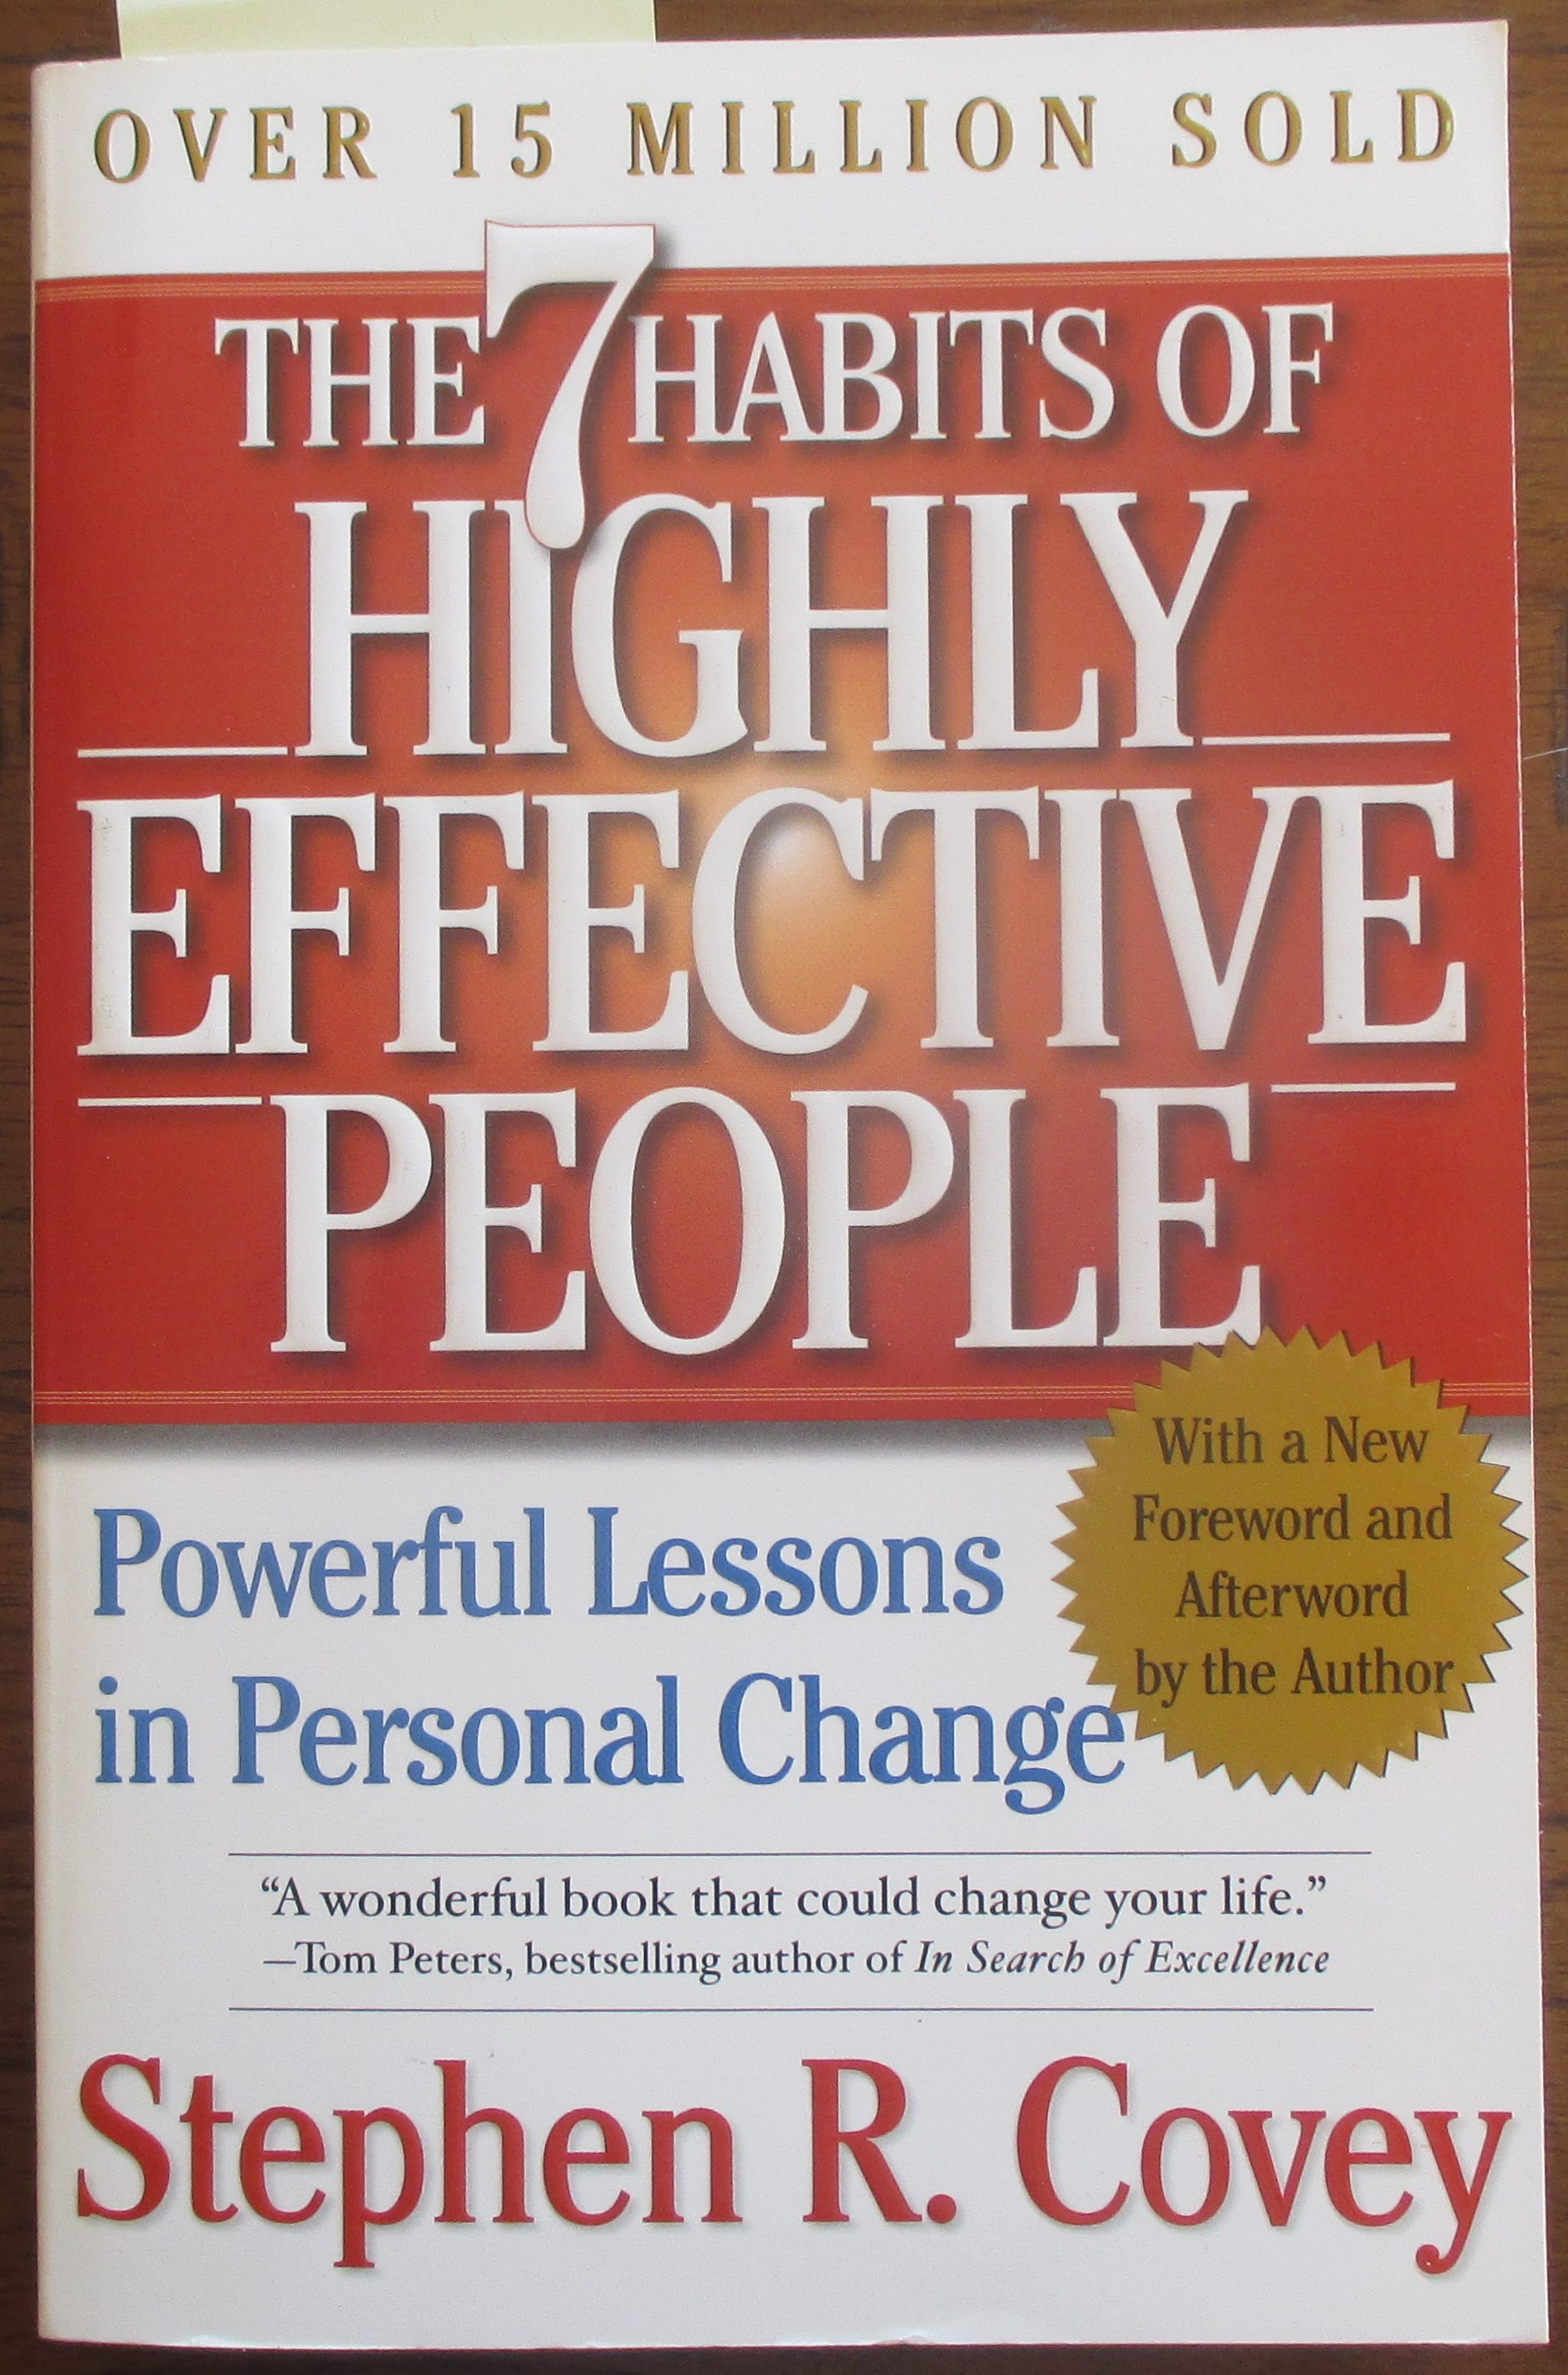 Image for 7 Habits of Highly Effective People, The